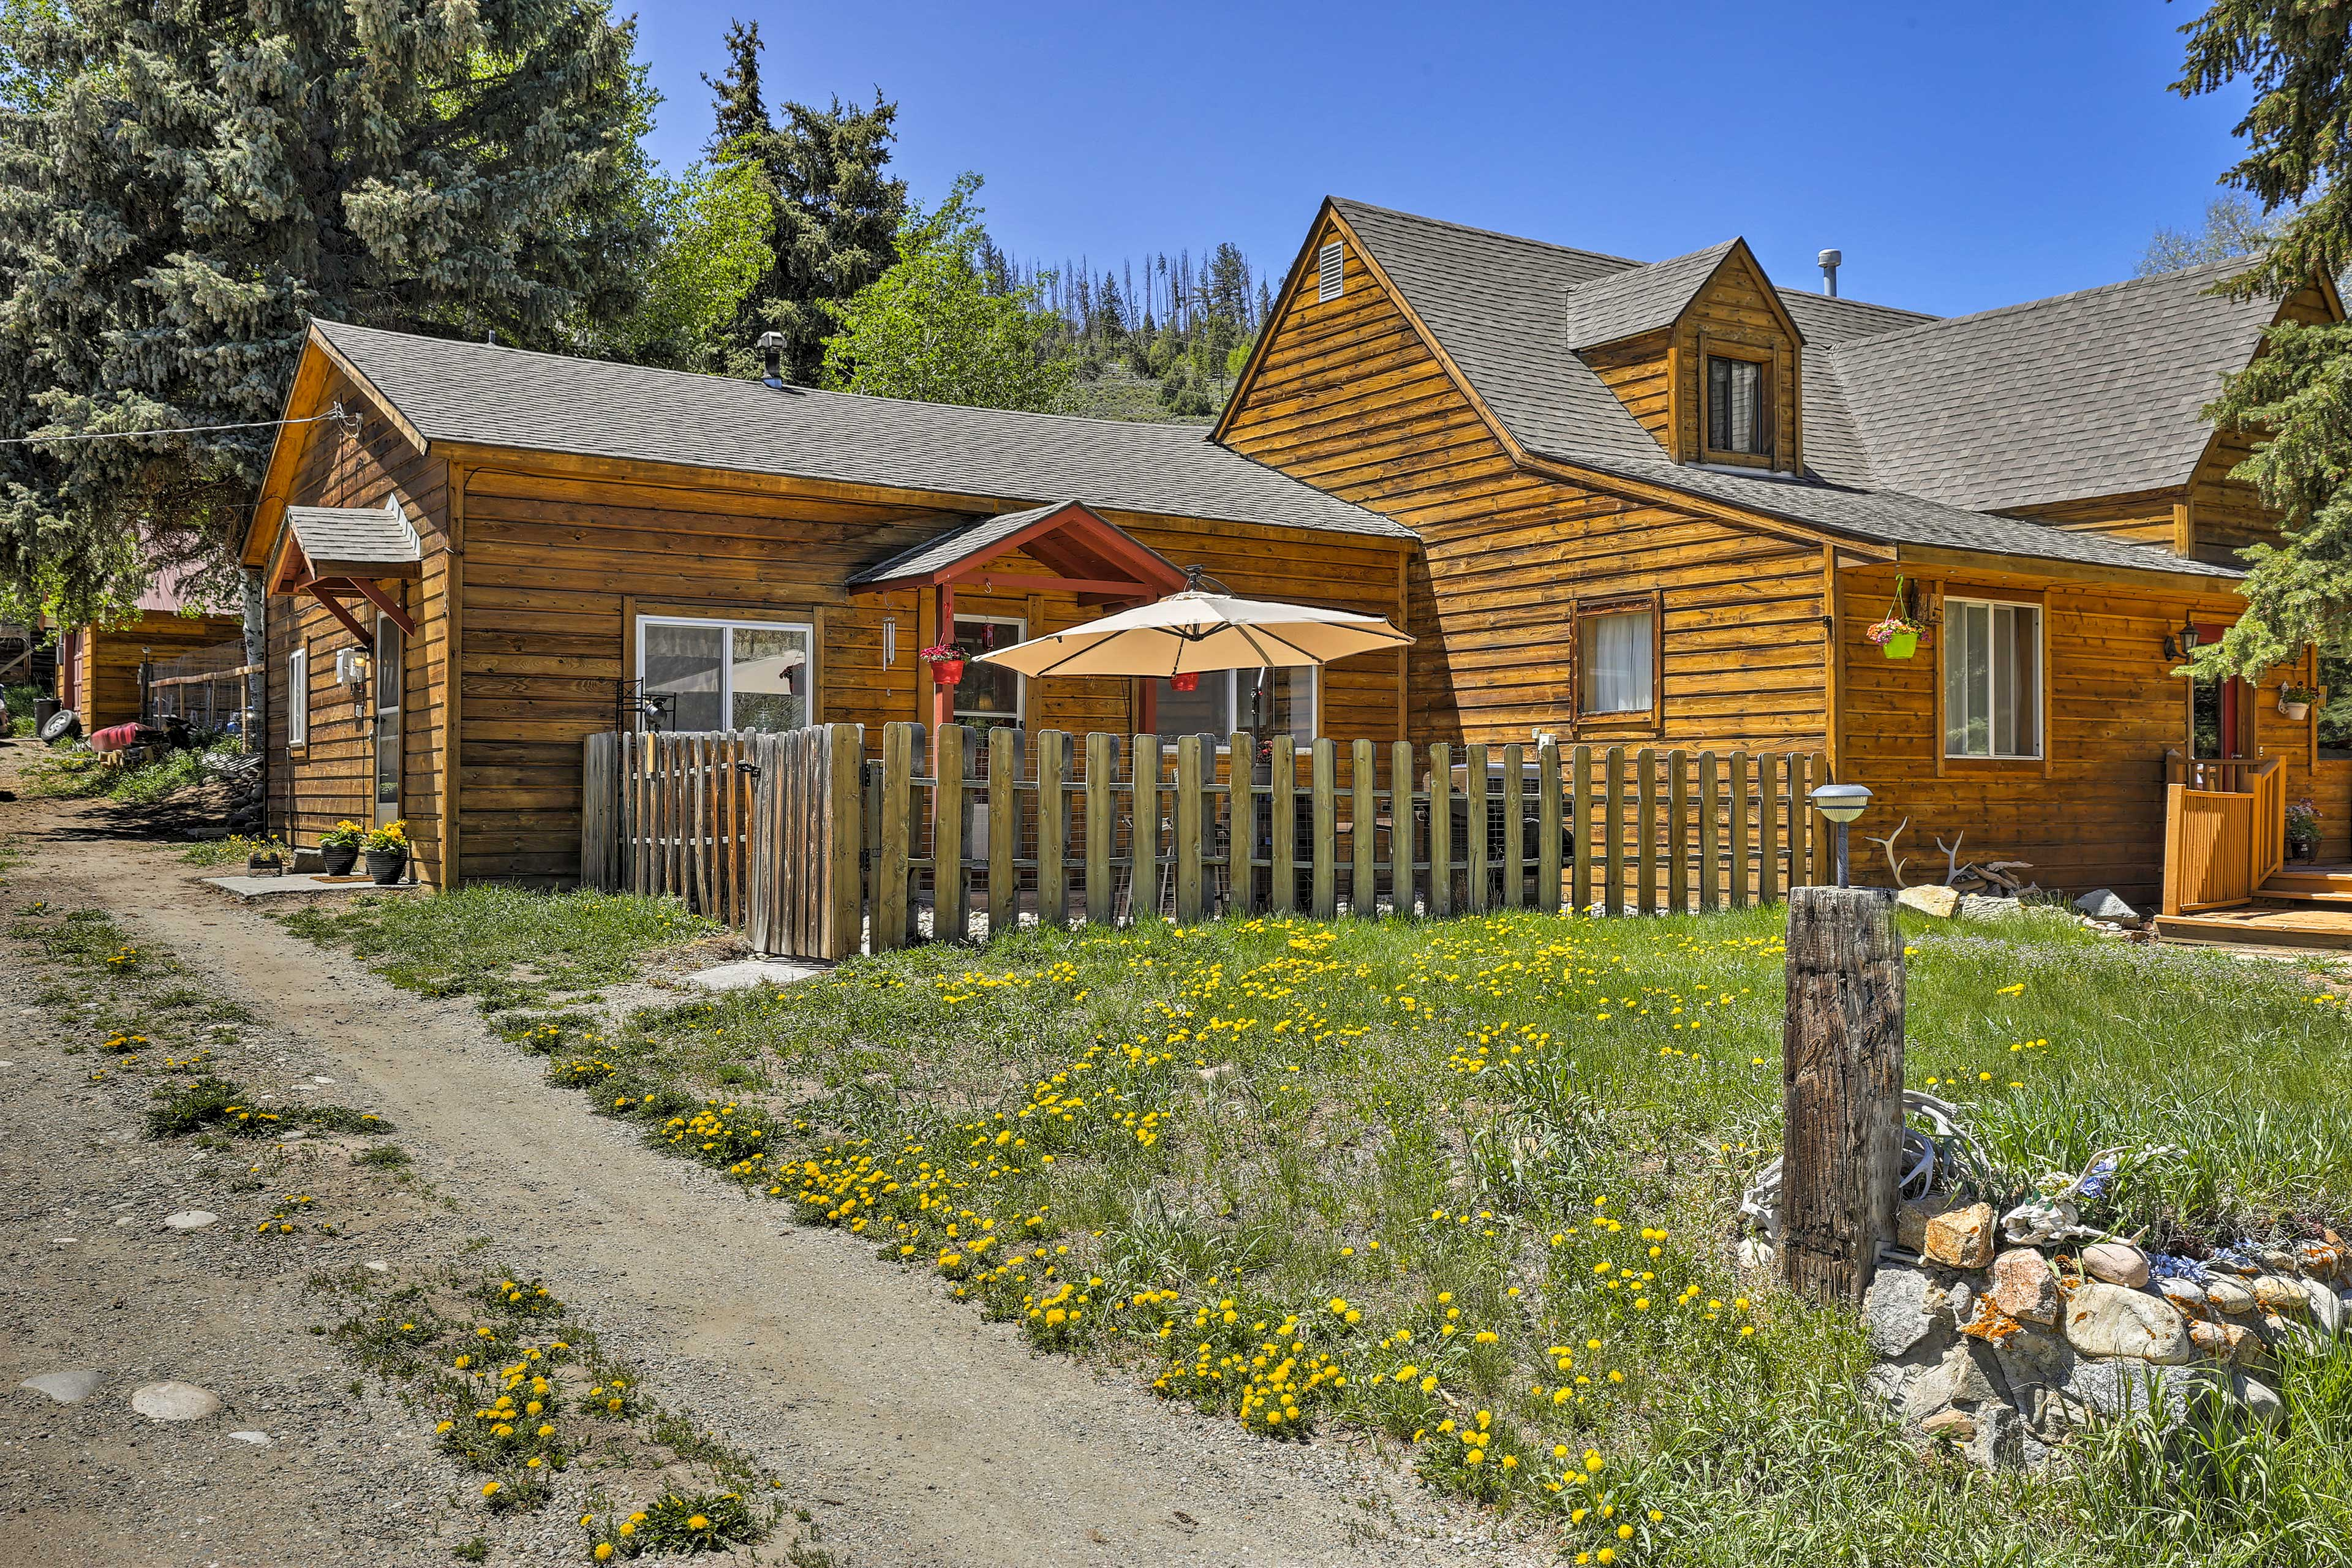 This 2-bedroom, 1-bathroom cottage is a short walk from the Hot Sulphur Springs.